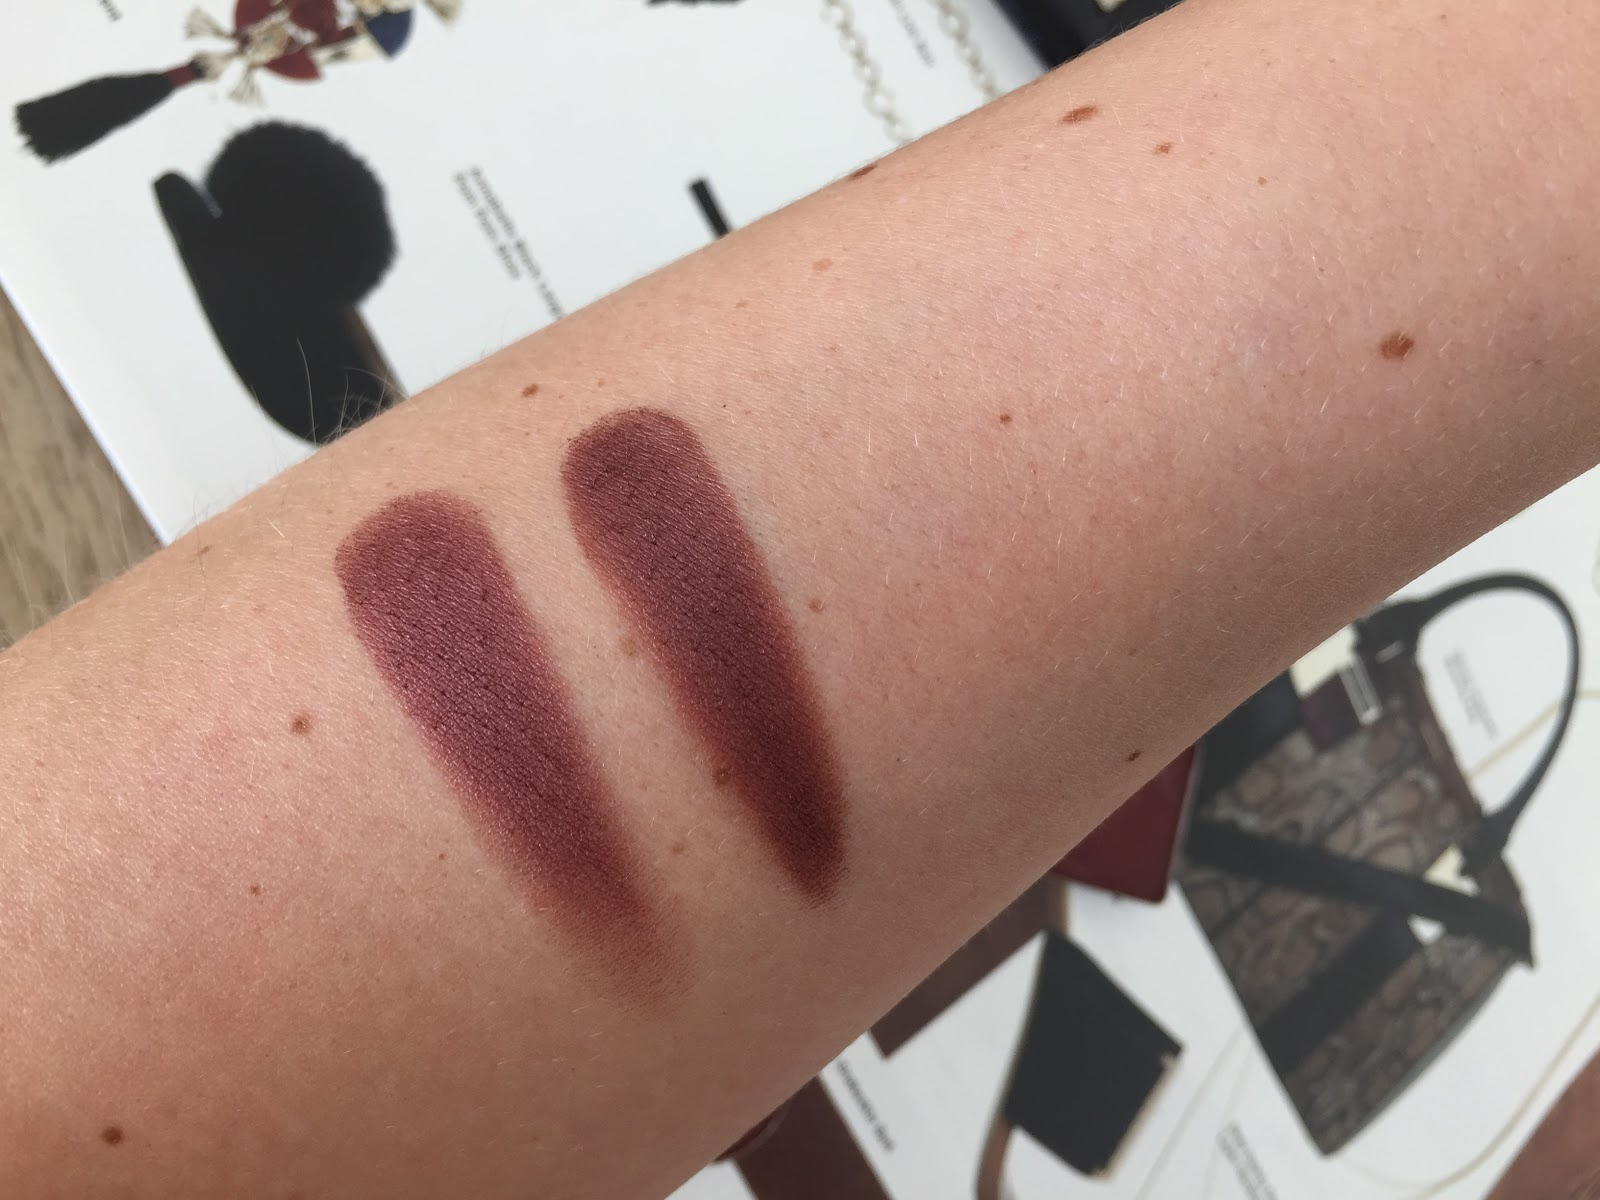 Inglot 452 & Makeup Geek Burlesque Dupe Swatches